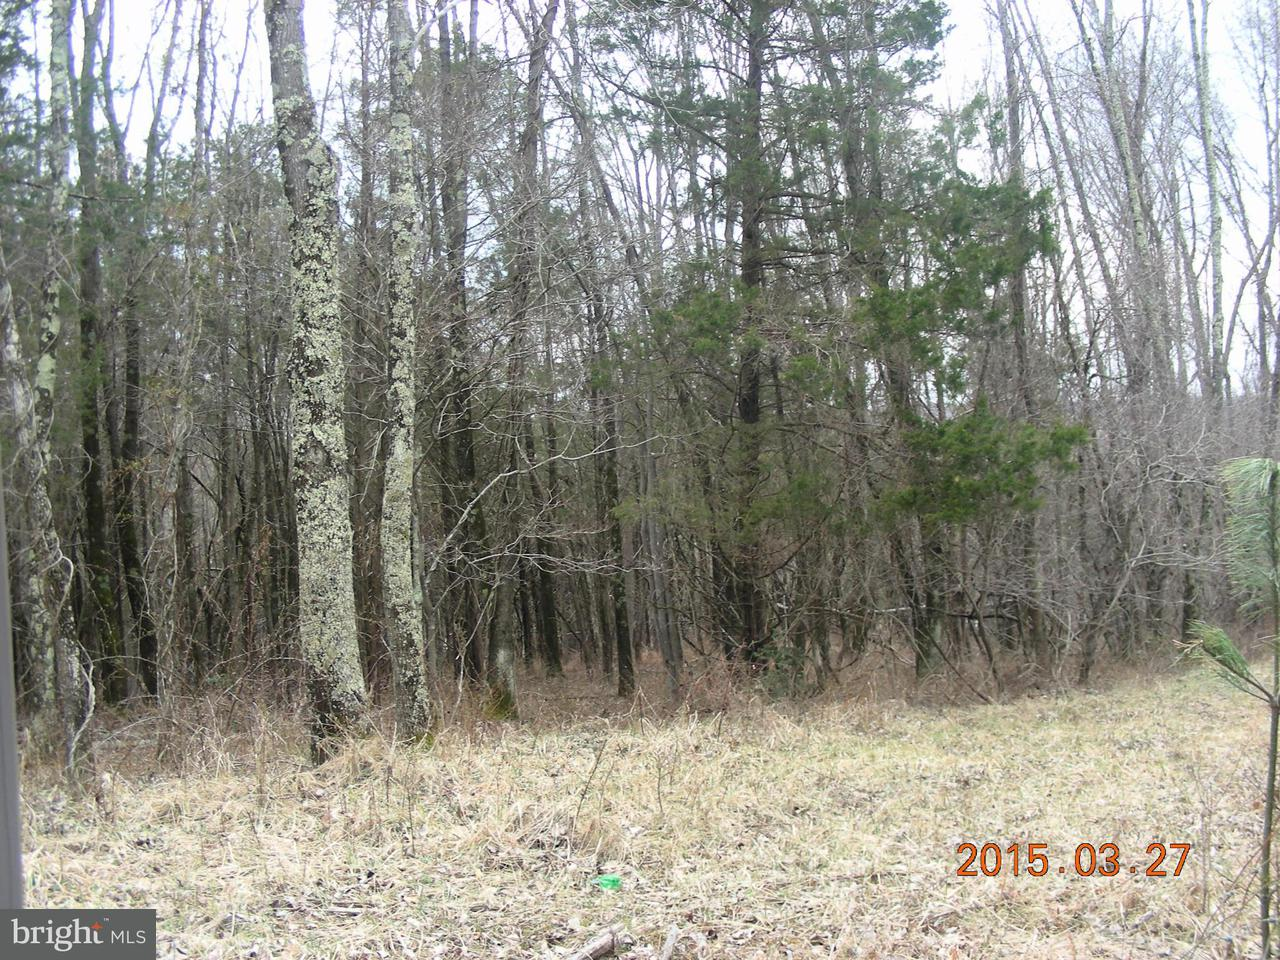 Land for Sale at 0 Old Busthead Rd Broad Run, Virginia 20137 United States